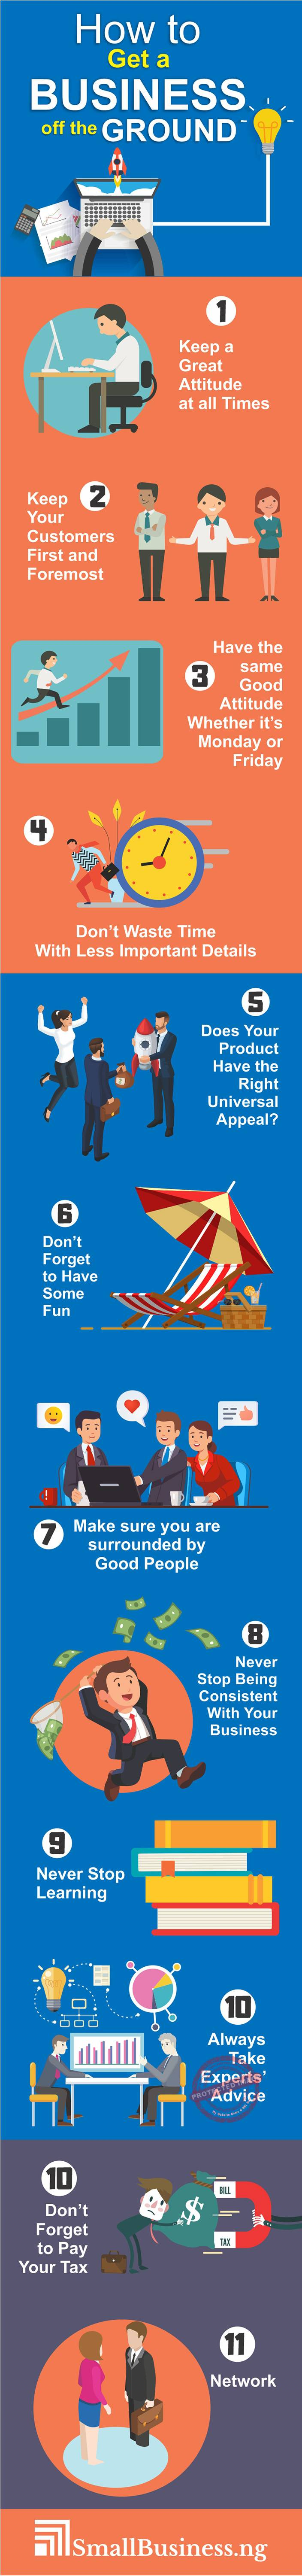 How To Get A Business Off the Ground infographic